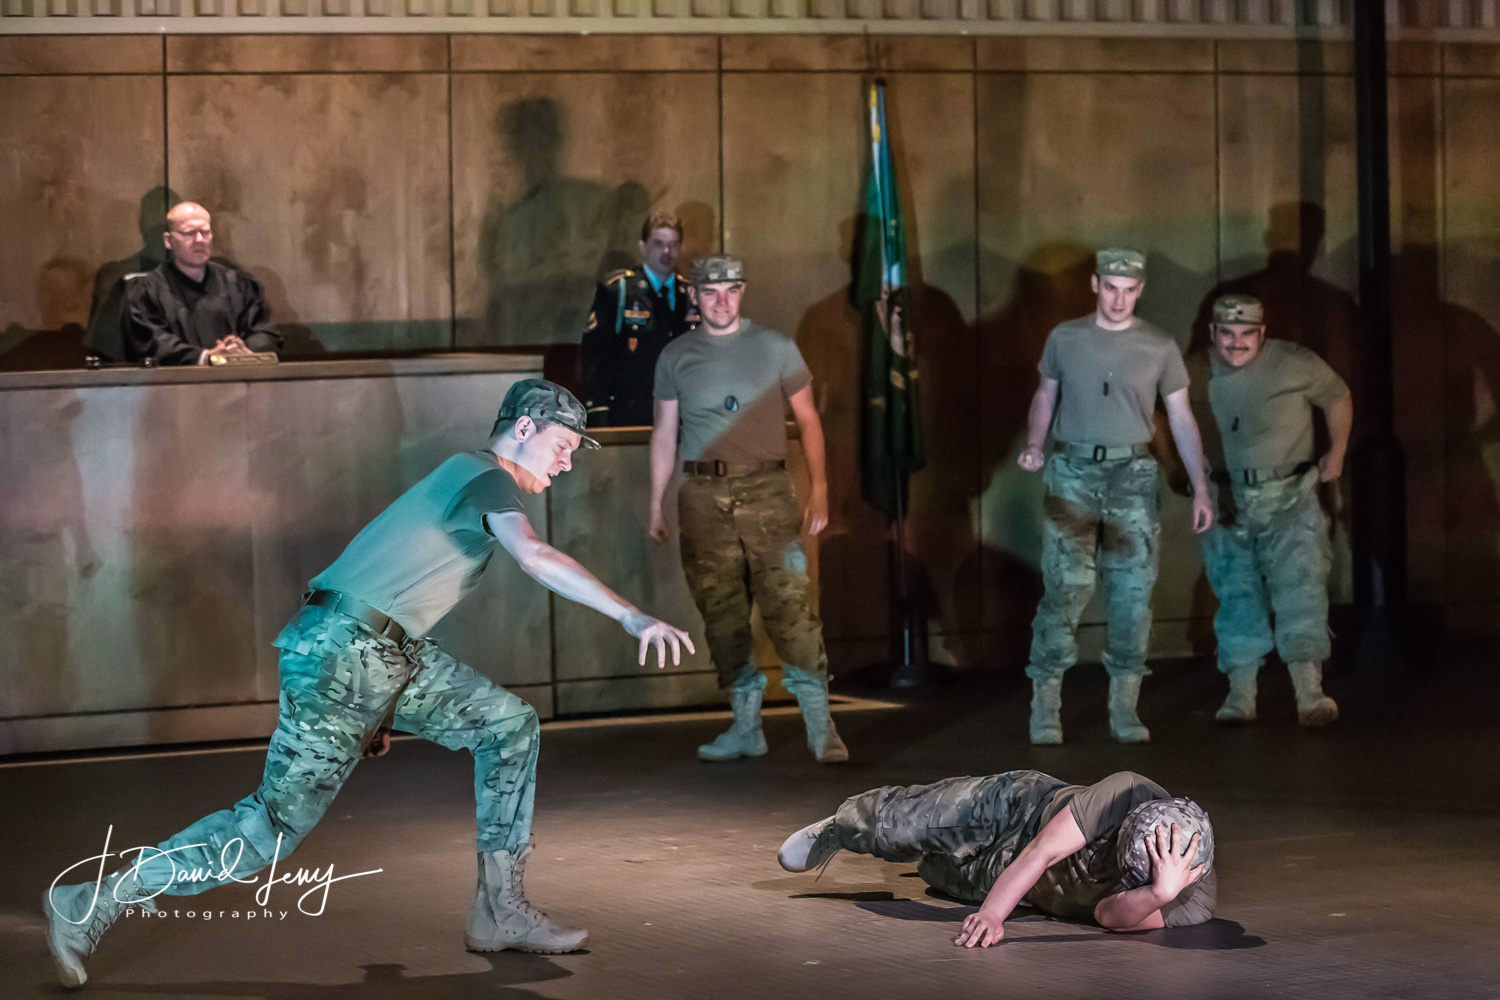 Andrew Munn - Specialist Swanson in AN AMERICAN SOLDIER (Opera Theatre of Saint Louis)